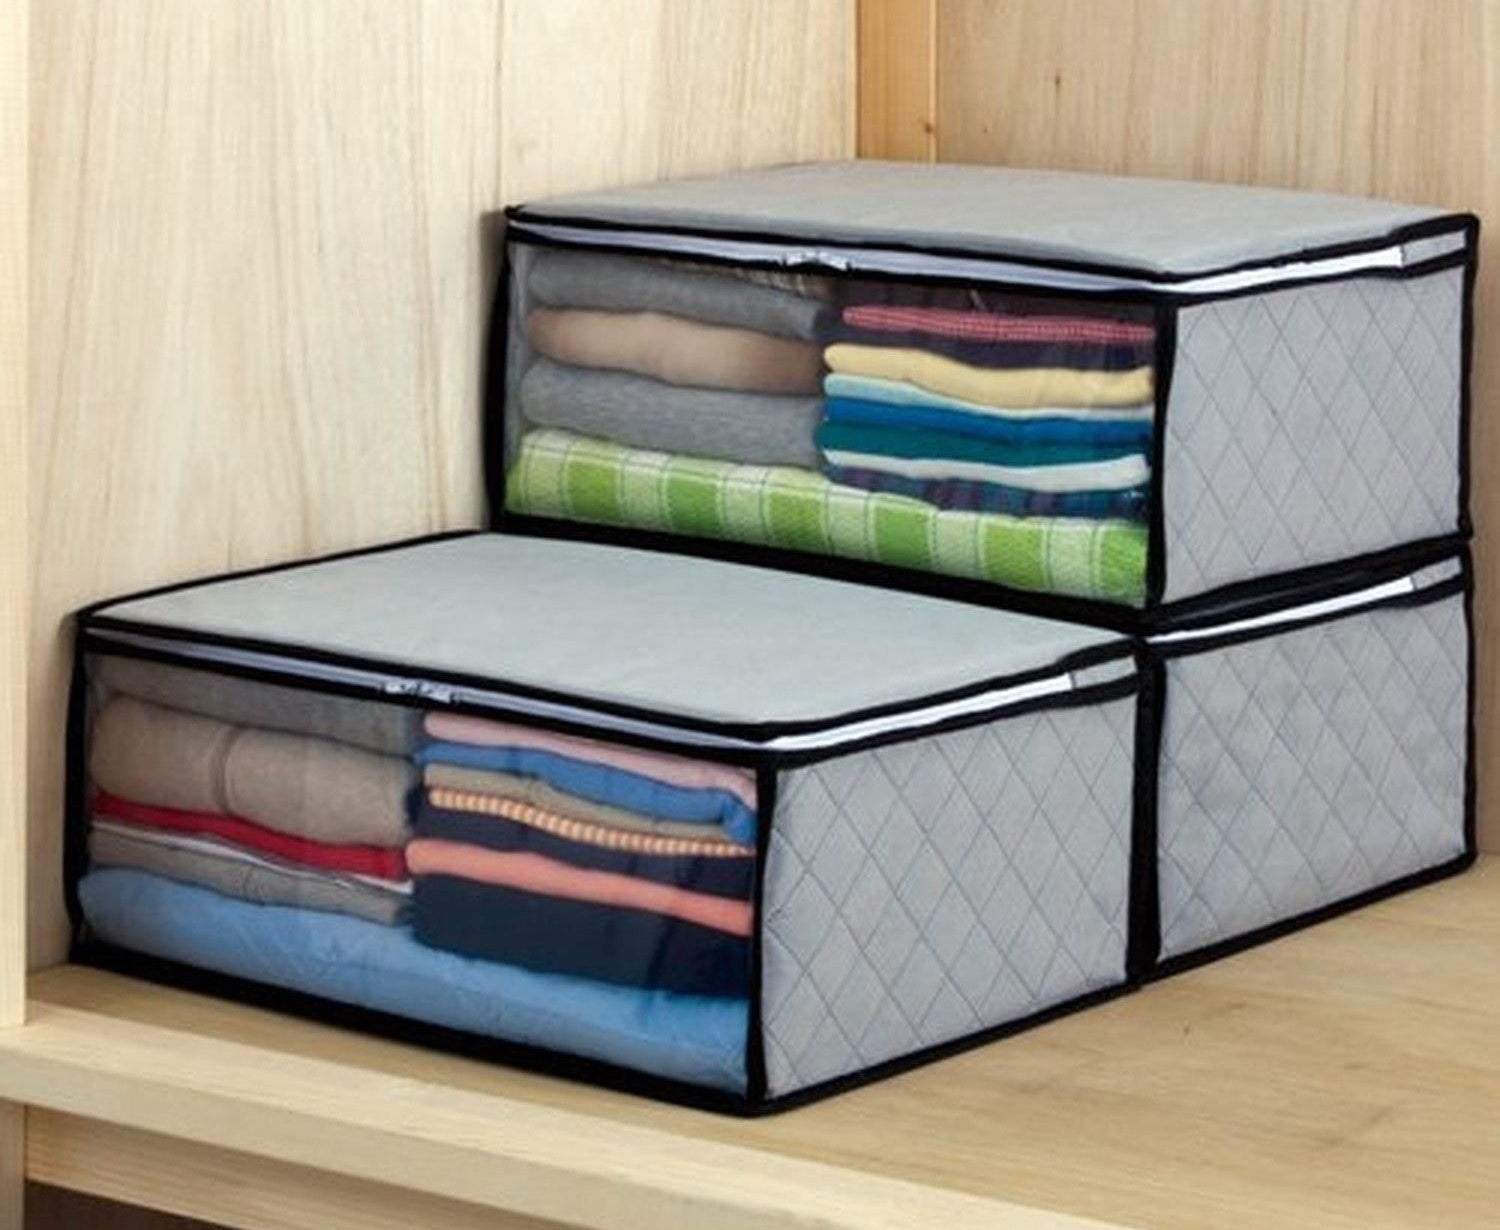 """These have clear windows so you can see exactly what's packed in each one. Promising review: """"I bought these to store sheets in my closet. These storage bags are well made and durable. I was able to fit two sets of queen-size sheet sets into each of them with room to spare. I like that they are breathable, stackable, and keep dust off your items when not in use. This zippers work well and are high quality. Great especially for sheets, blankets, and clothes, I would recommend them!"""" —S. M. G.Get a three-pack from Amazon for $14.98."""